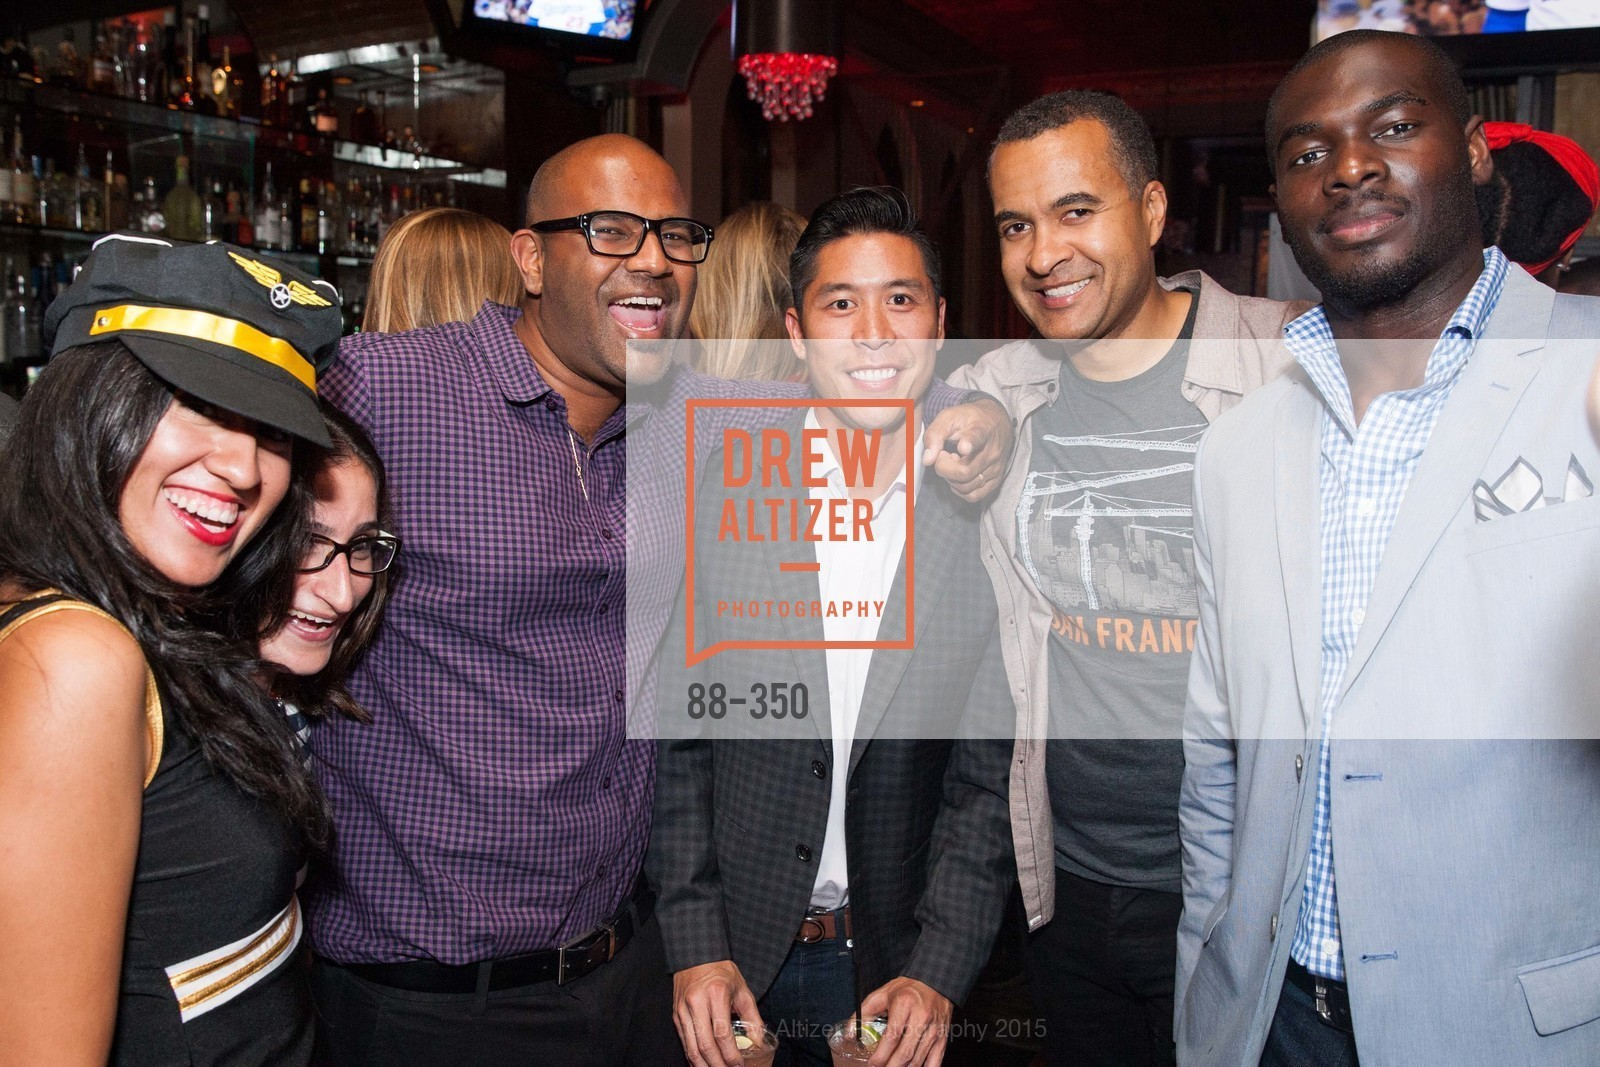 Anne Warda, Janine Padilla, Abi Mamidi, Andy Line, Spinsters of San Francisco Presents: Fleet or Flight, Mayes Oyster House. 1233 Polk St, October 9th, 2015,Drew Altizer, Drew Altizer Photography, full-service agency, private events, San Francisco photographer, photographer california